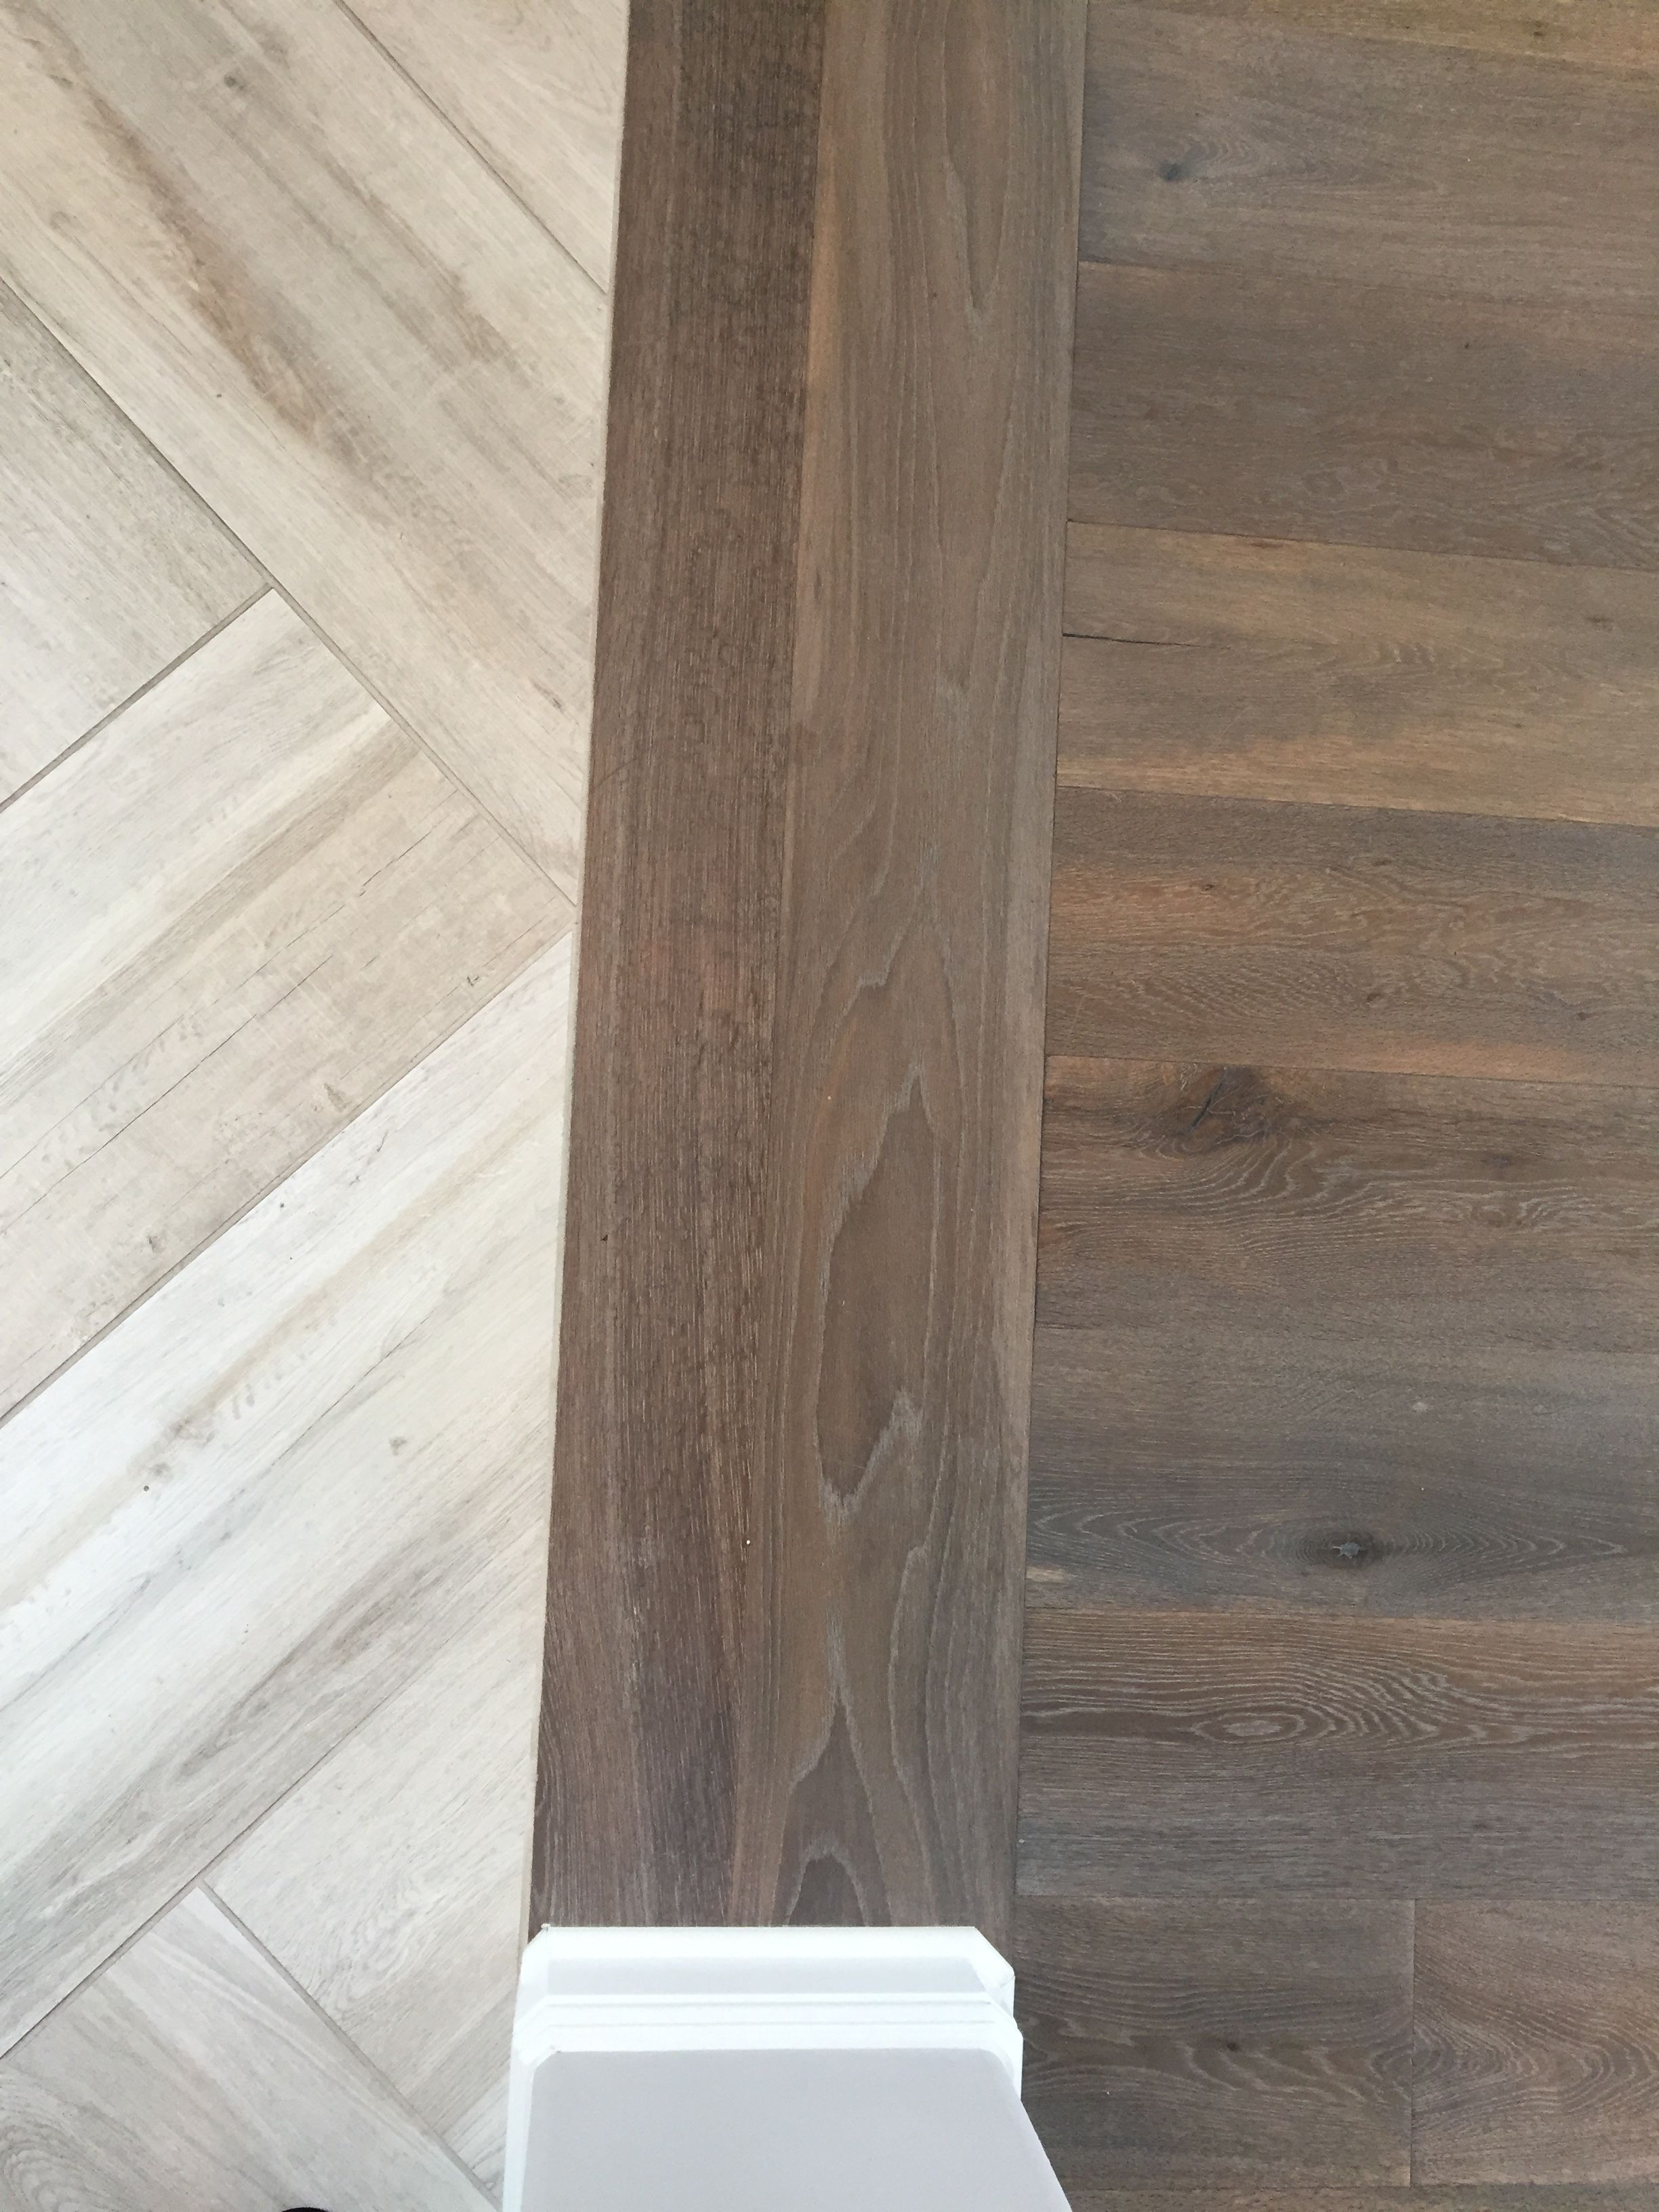 Hardwood Flooring Nails Per Square Foot Of Floor Transition Laminate to Herringbone Tile Pattern Model Inside Floor Transition Laminate to Herringbone Tile Pattern